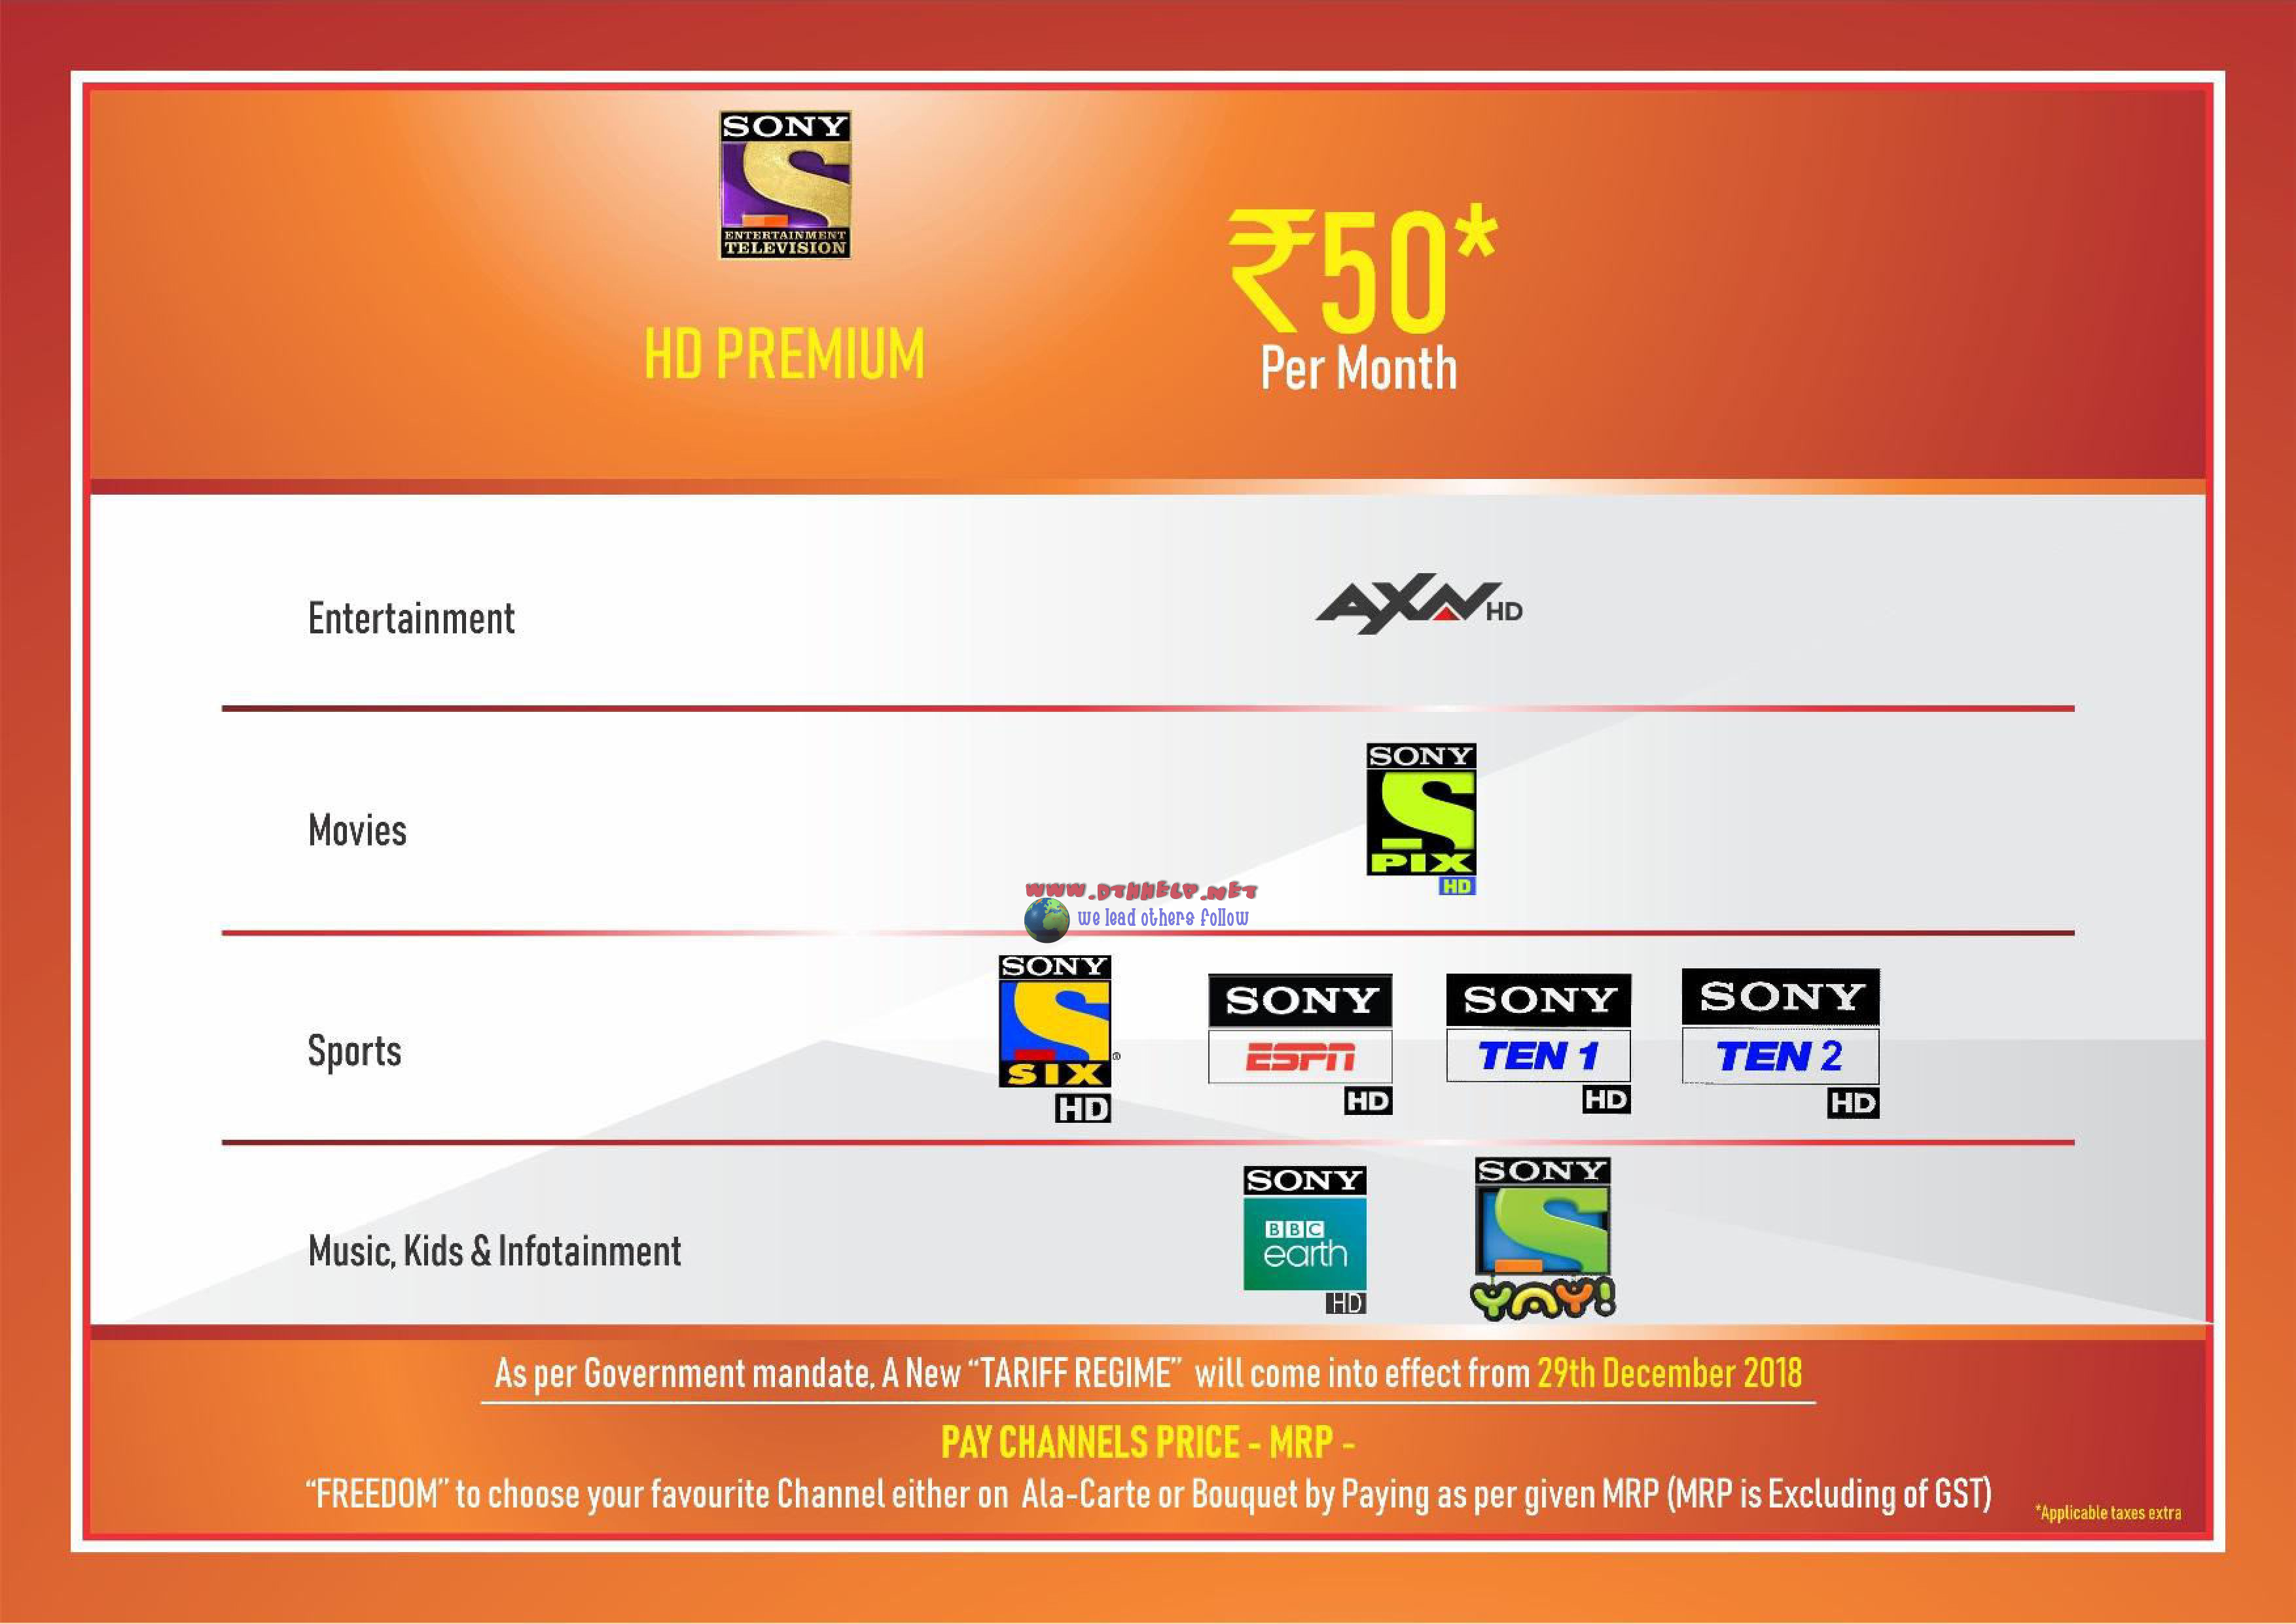 How to Activate Sony Happy India Pack 31 and Sony Happy